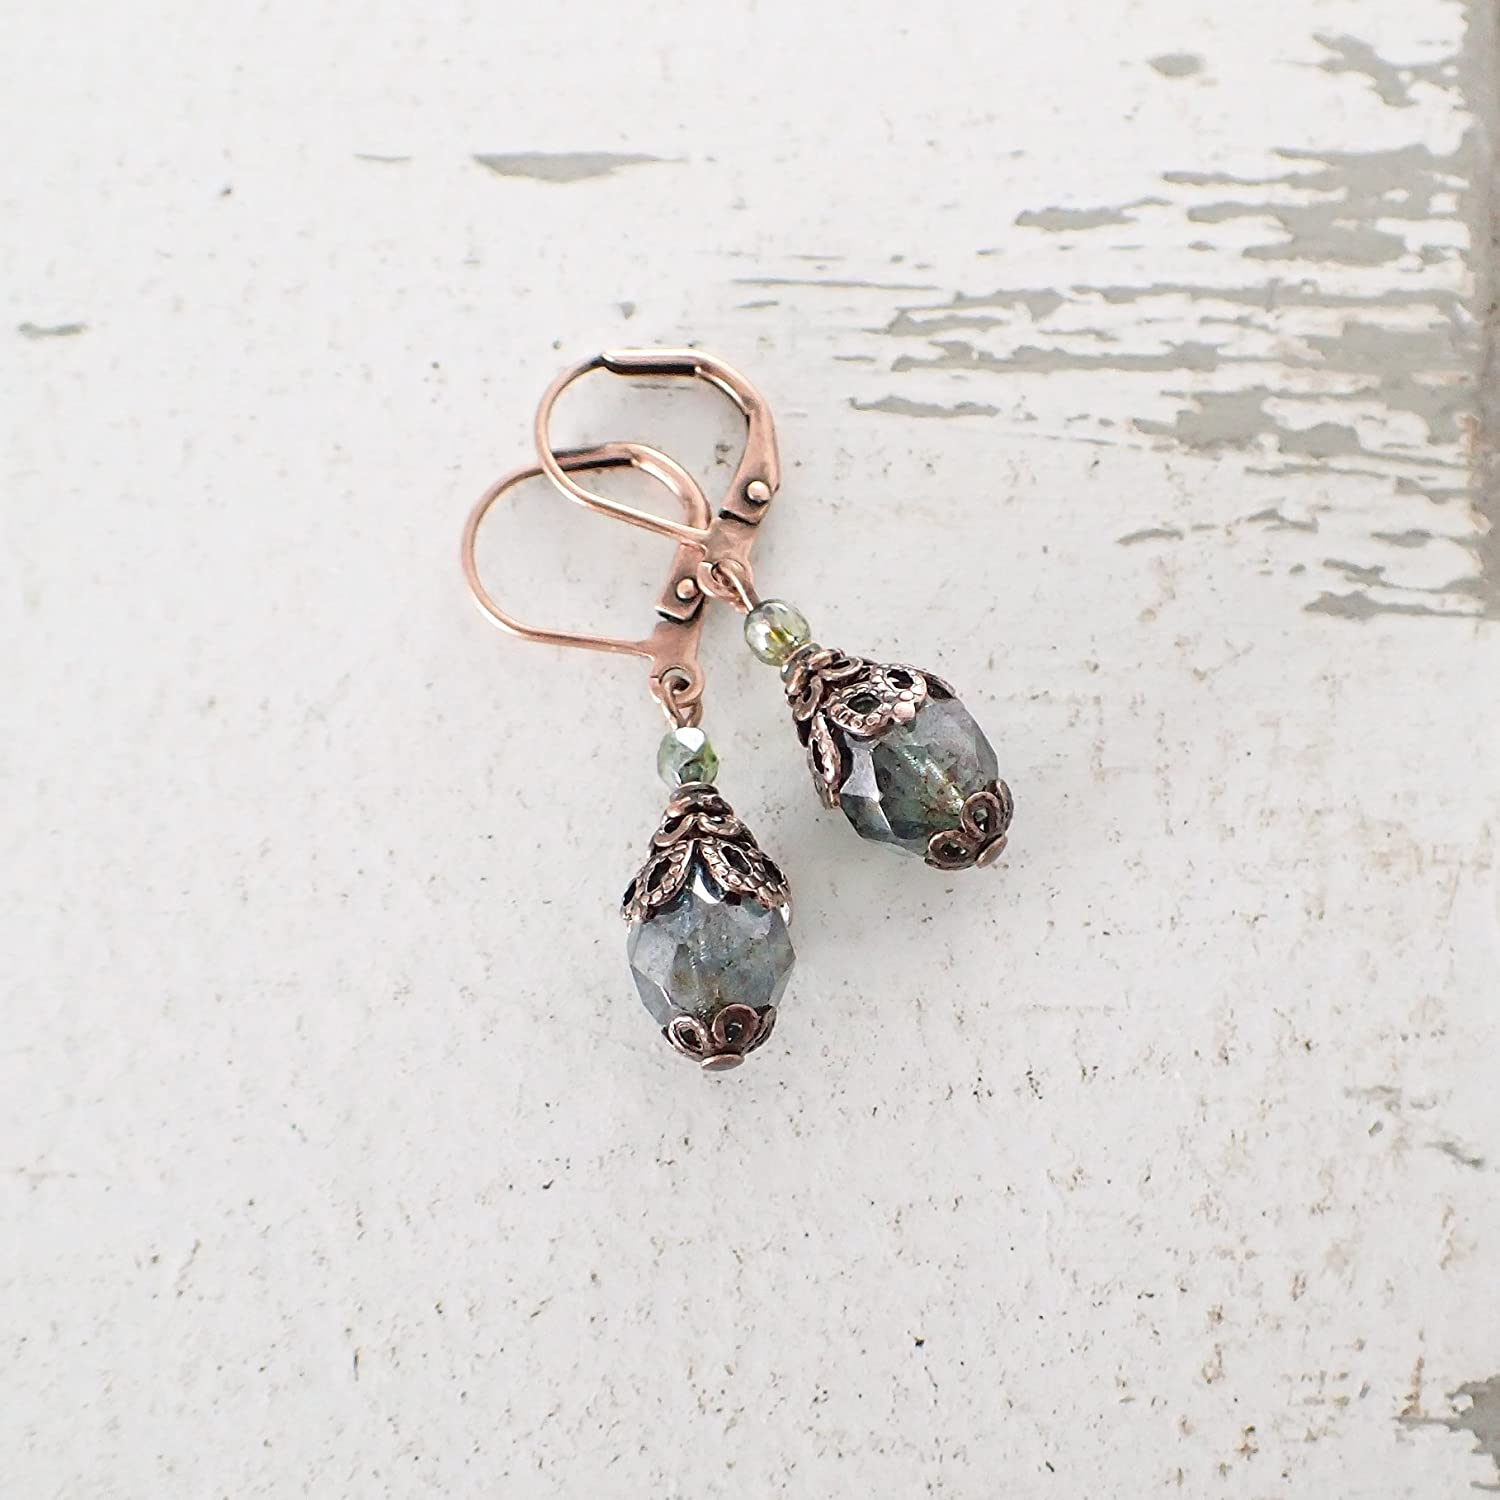 Antique Style Rustic Green and Copper Colored Earrings